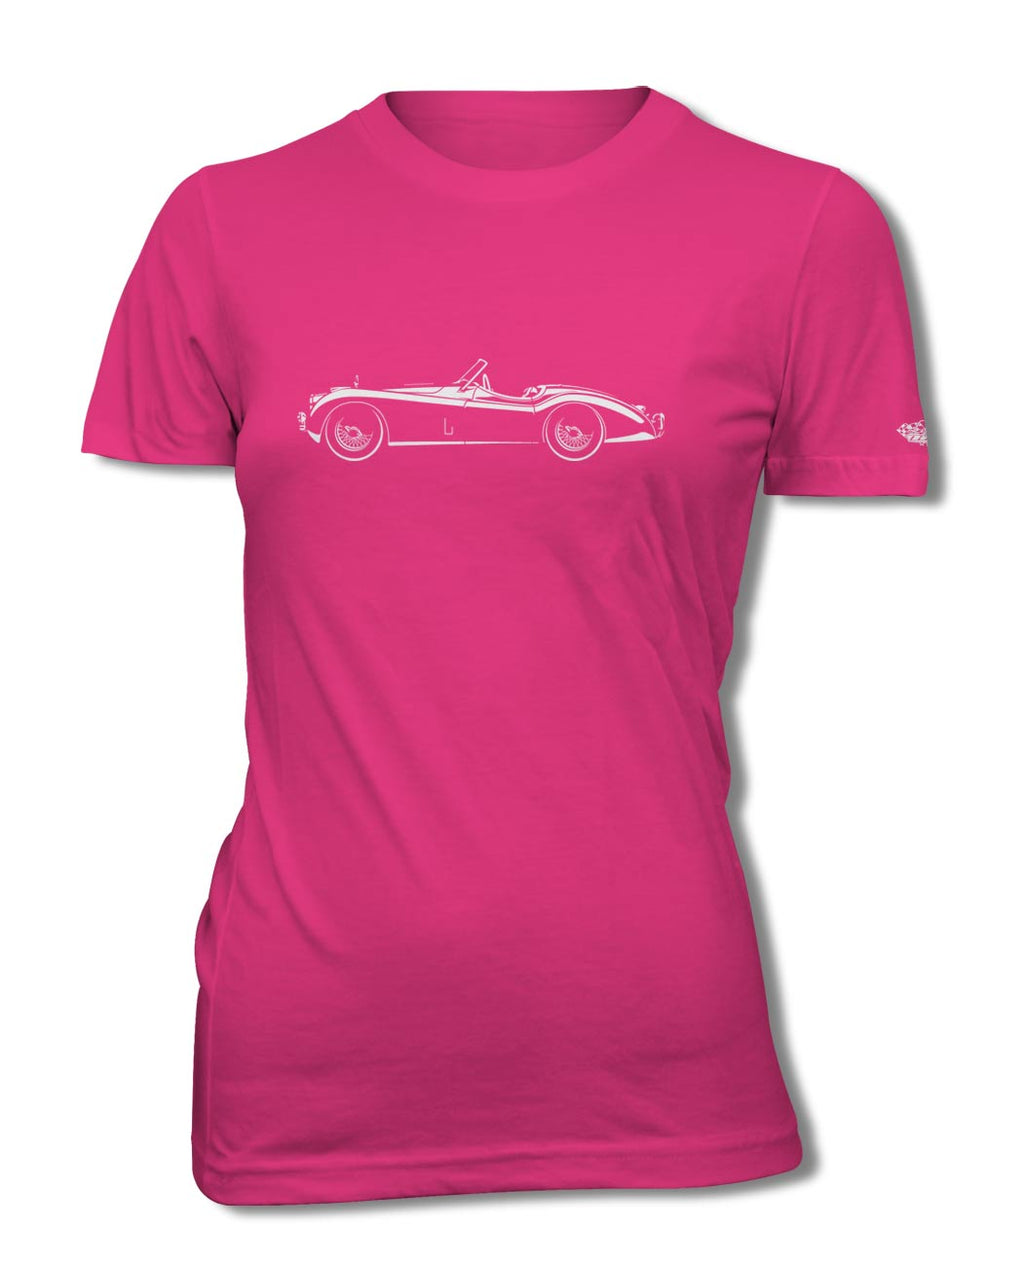 Jaguar XK 120 Convertible T-Shirt - Women - Side View